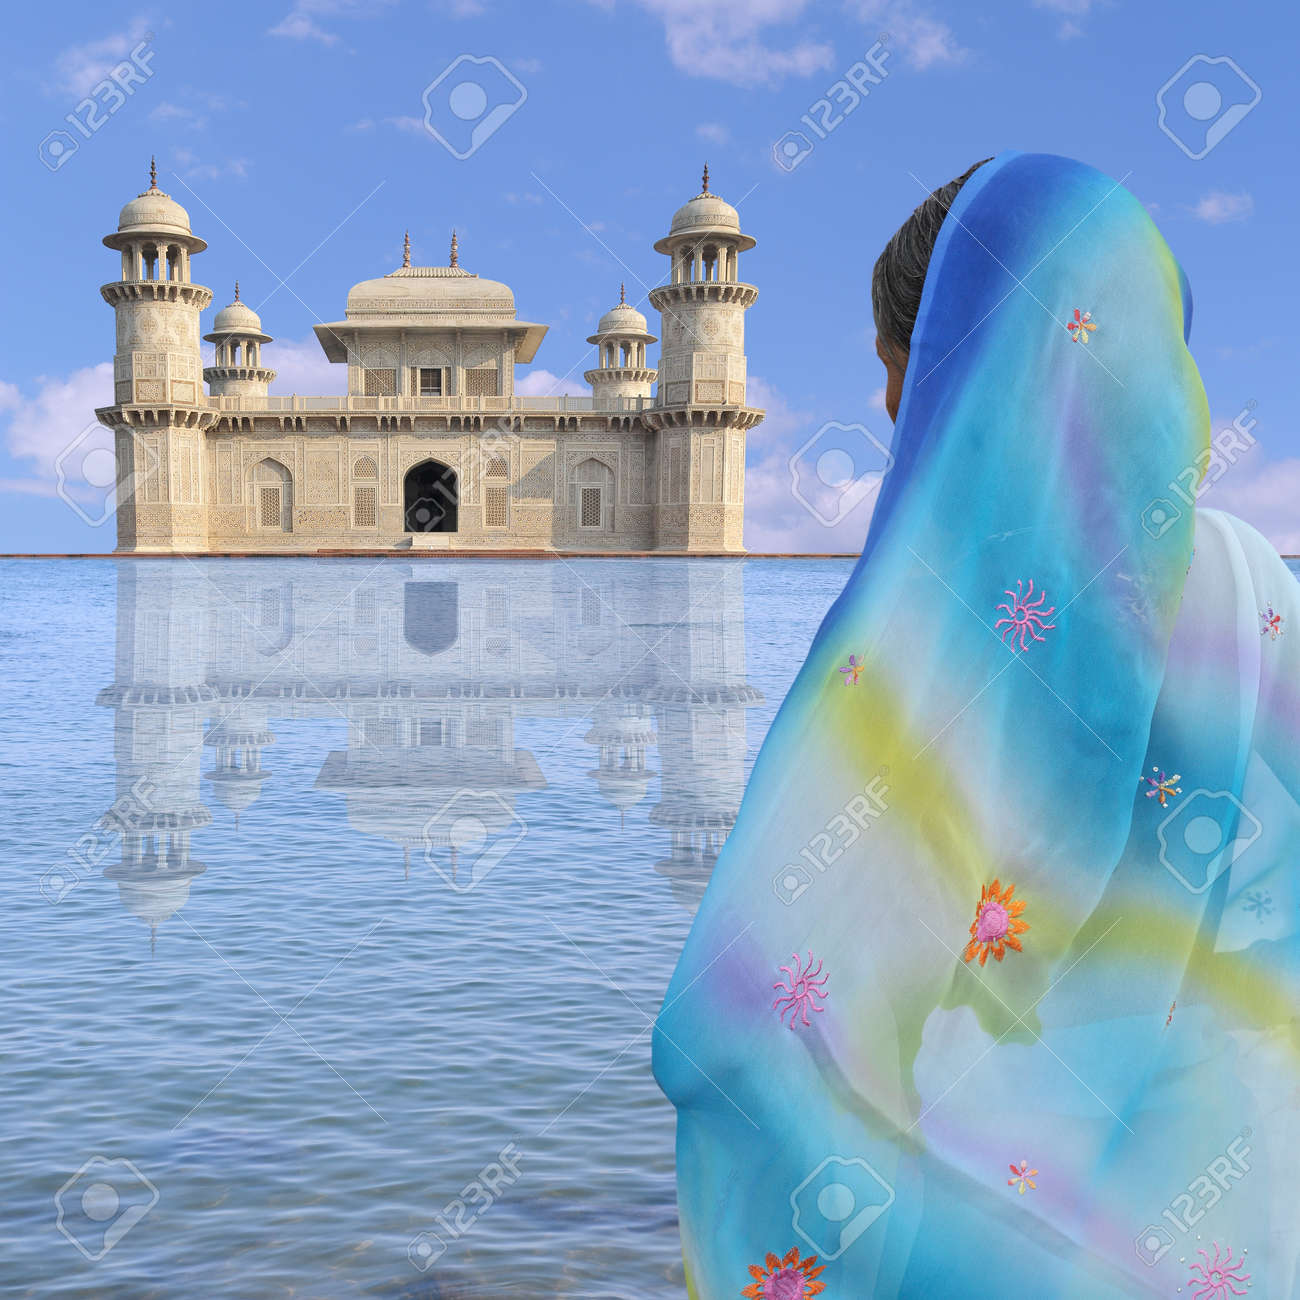 Woman with sari near a palace in India. Stock Photo - 10685904